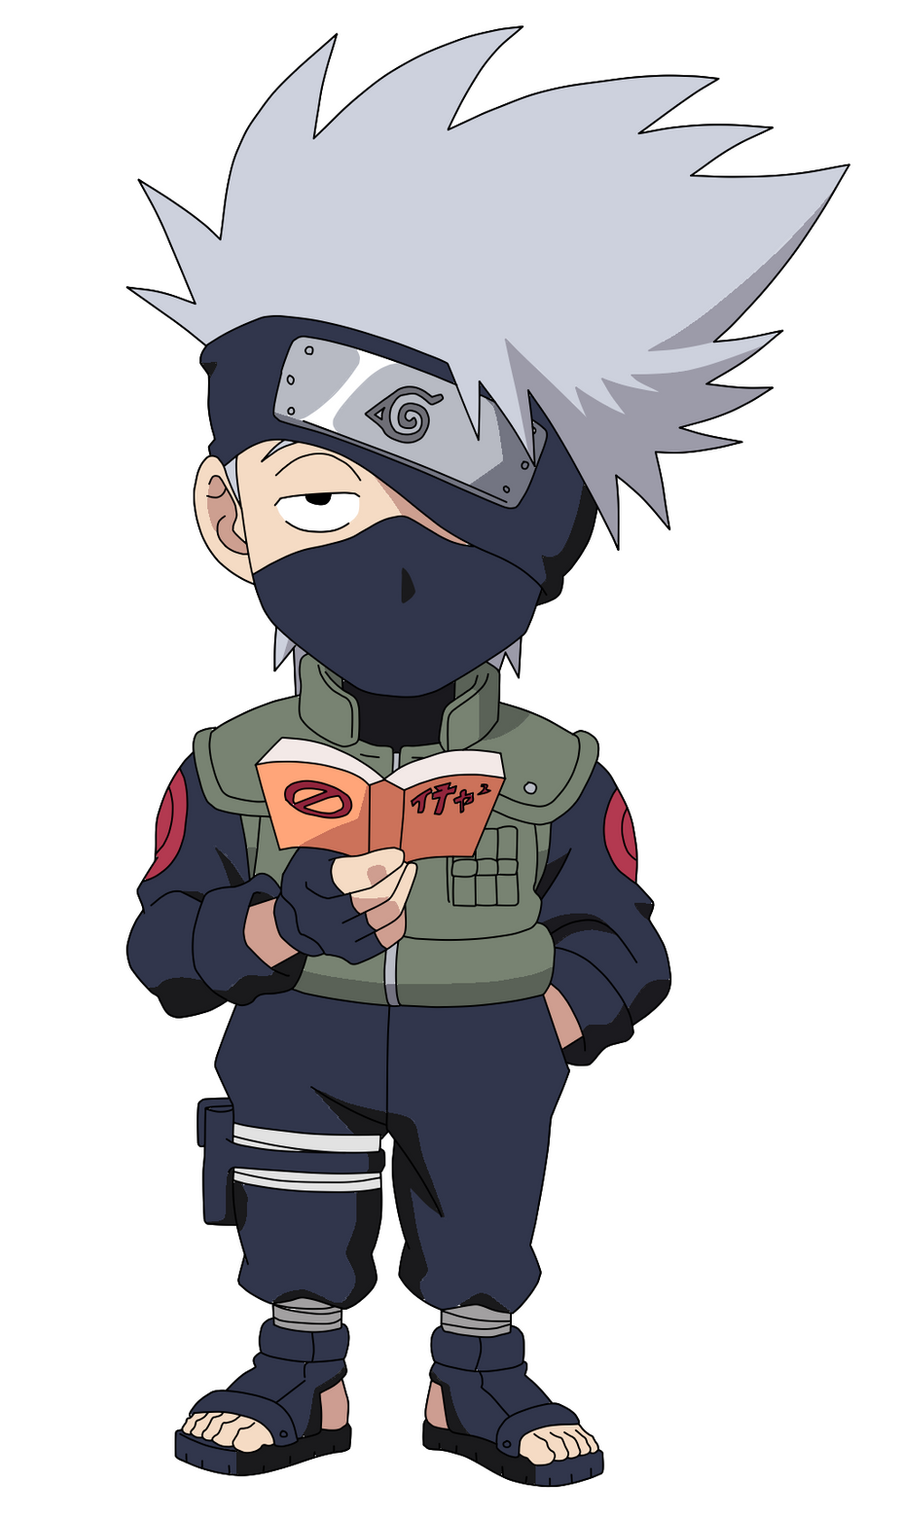 Kakashi Chibi by Benzaman on DeviantArt